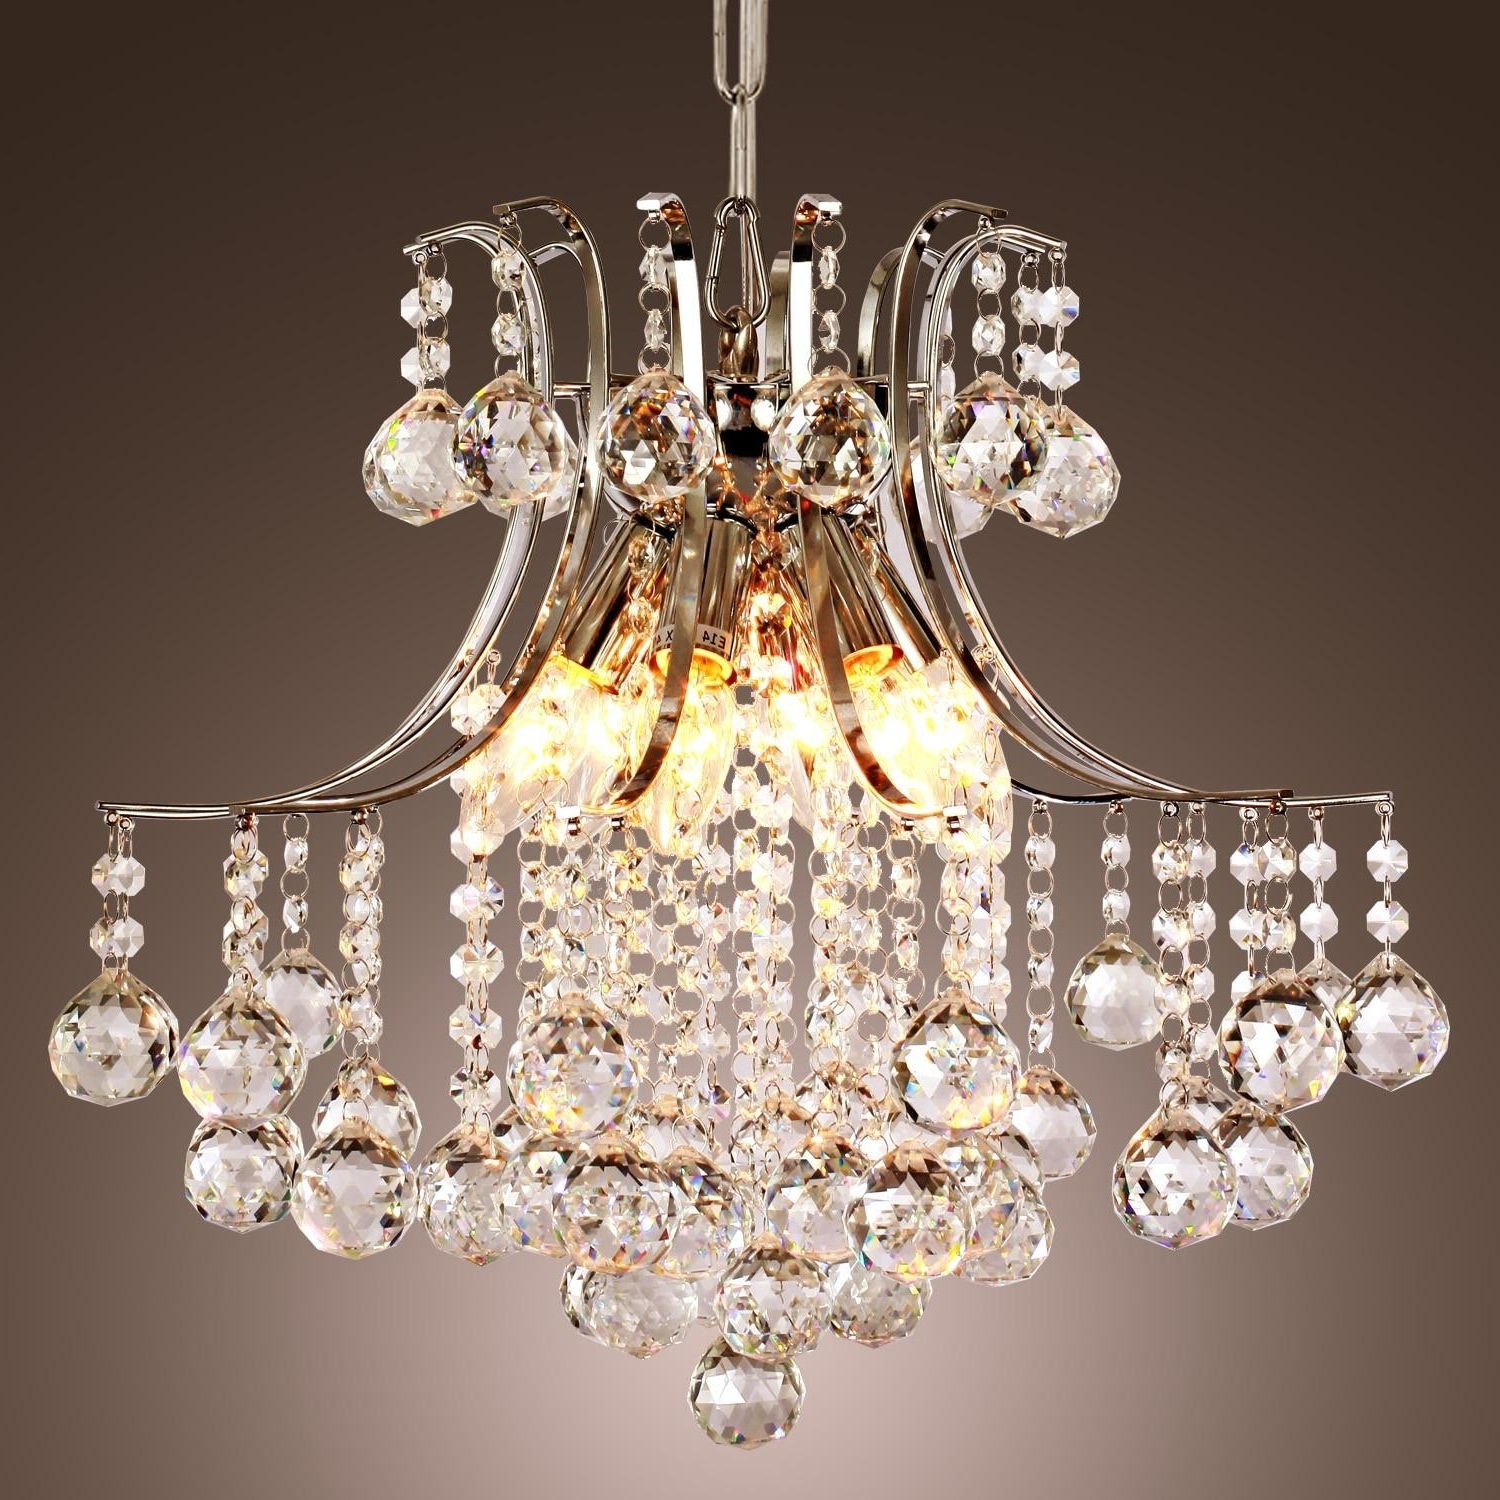 Chandeliers : Contemporary Chandelier Lighting Beautiful 56 Examples In Current Ultra Modern Chandeliers (View 3 of 15)